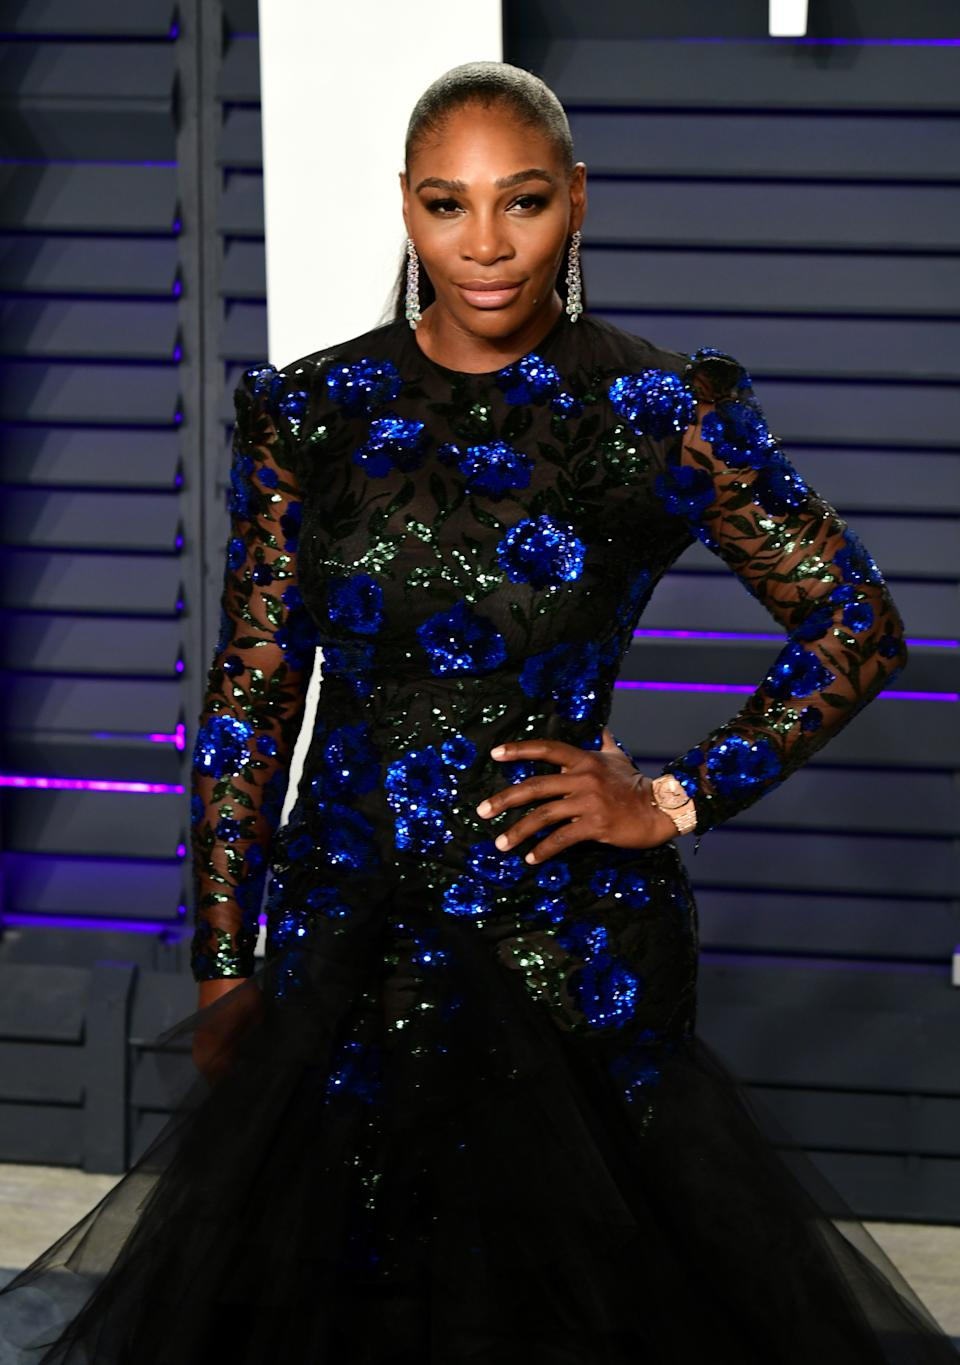 Serena Williams attending the Vanity Fair Oscar Party held at the Wallis Annenberg Center for the Performing Arts in Beverly Hills, Los Angeles, California, USA.